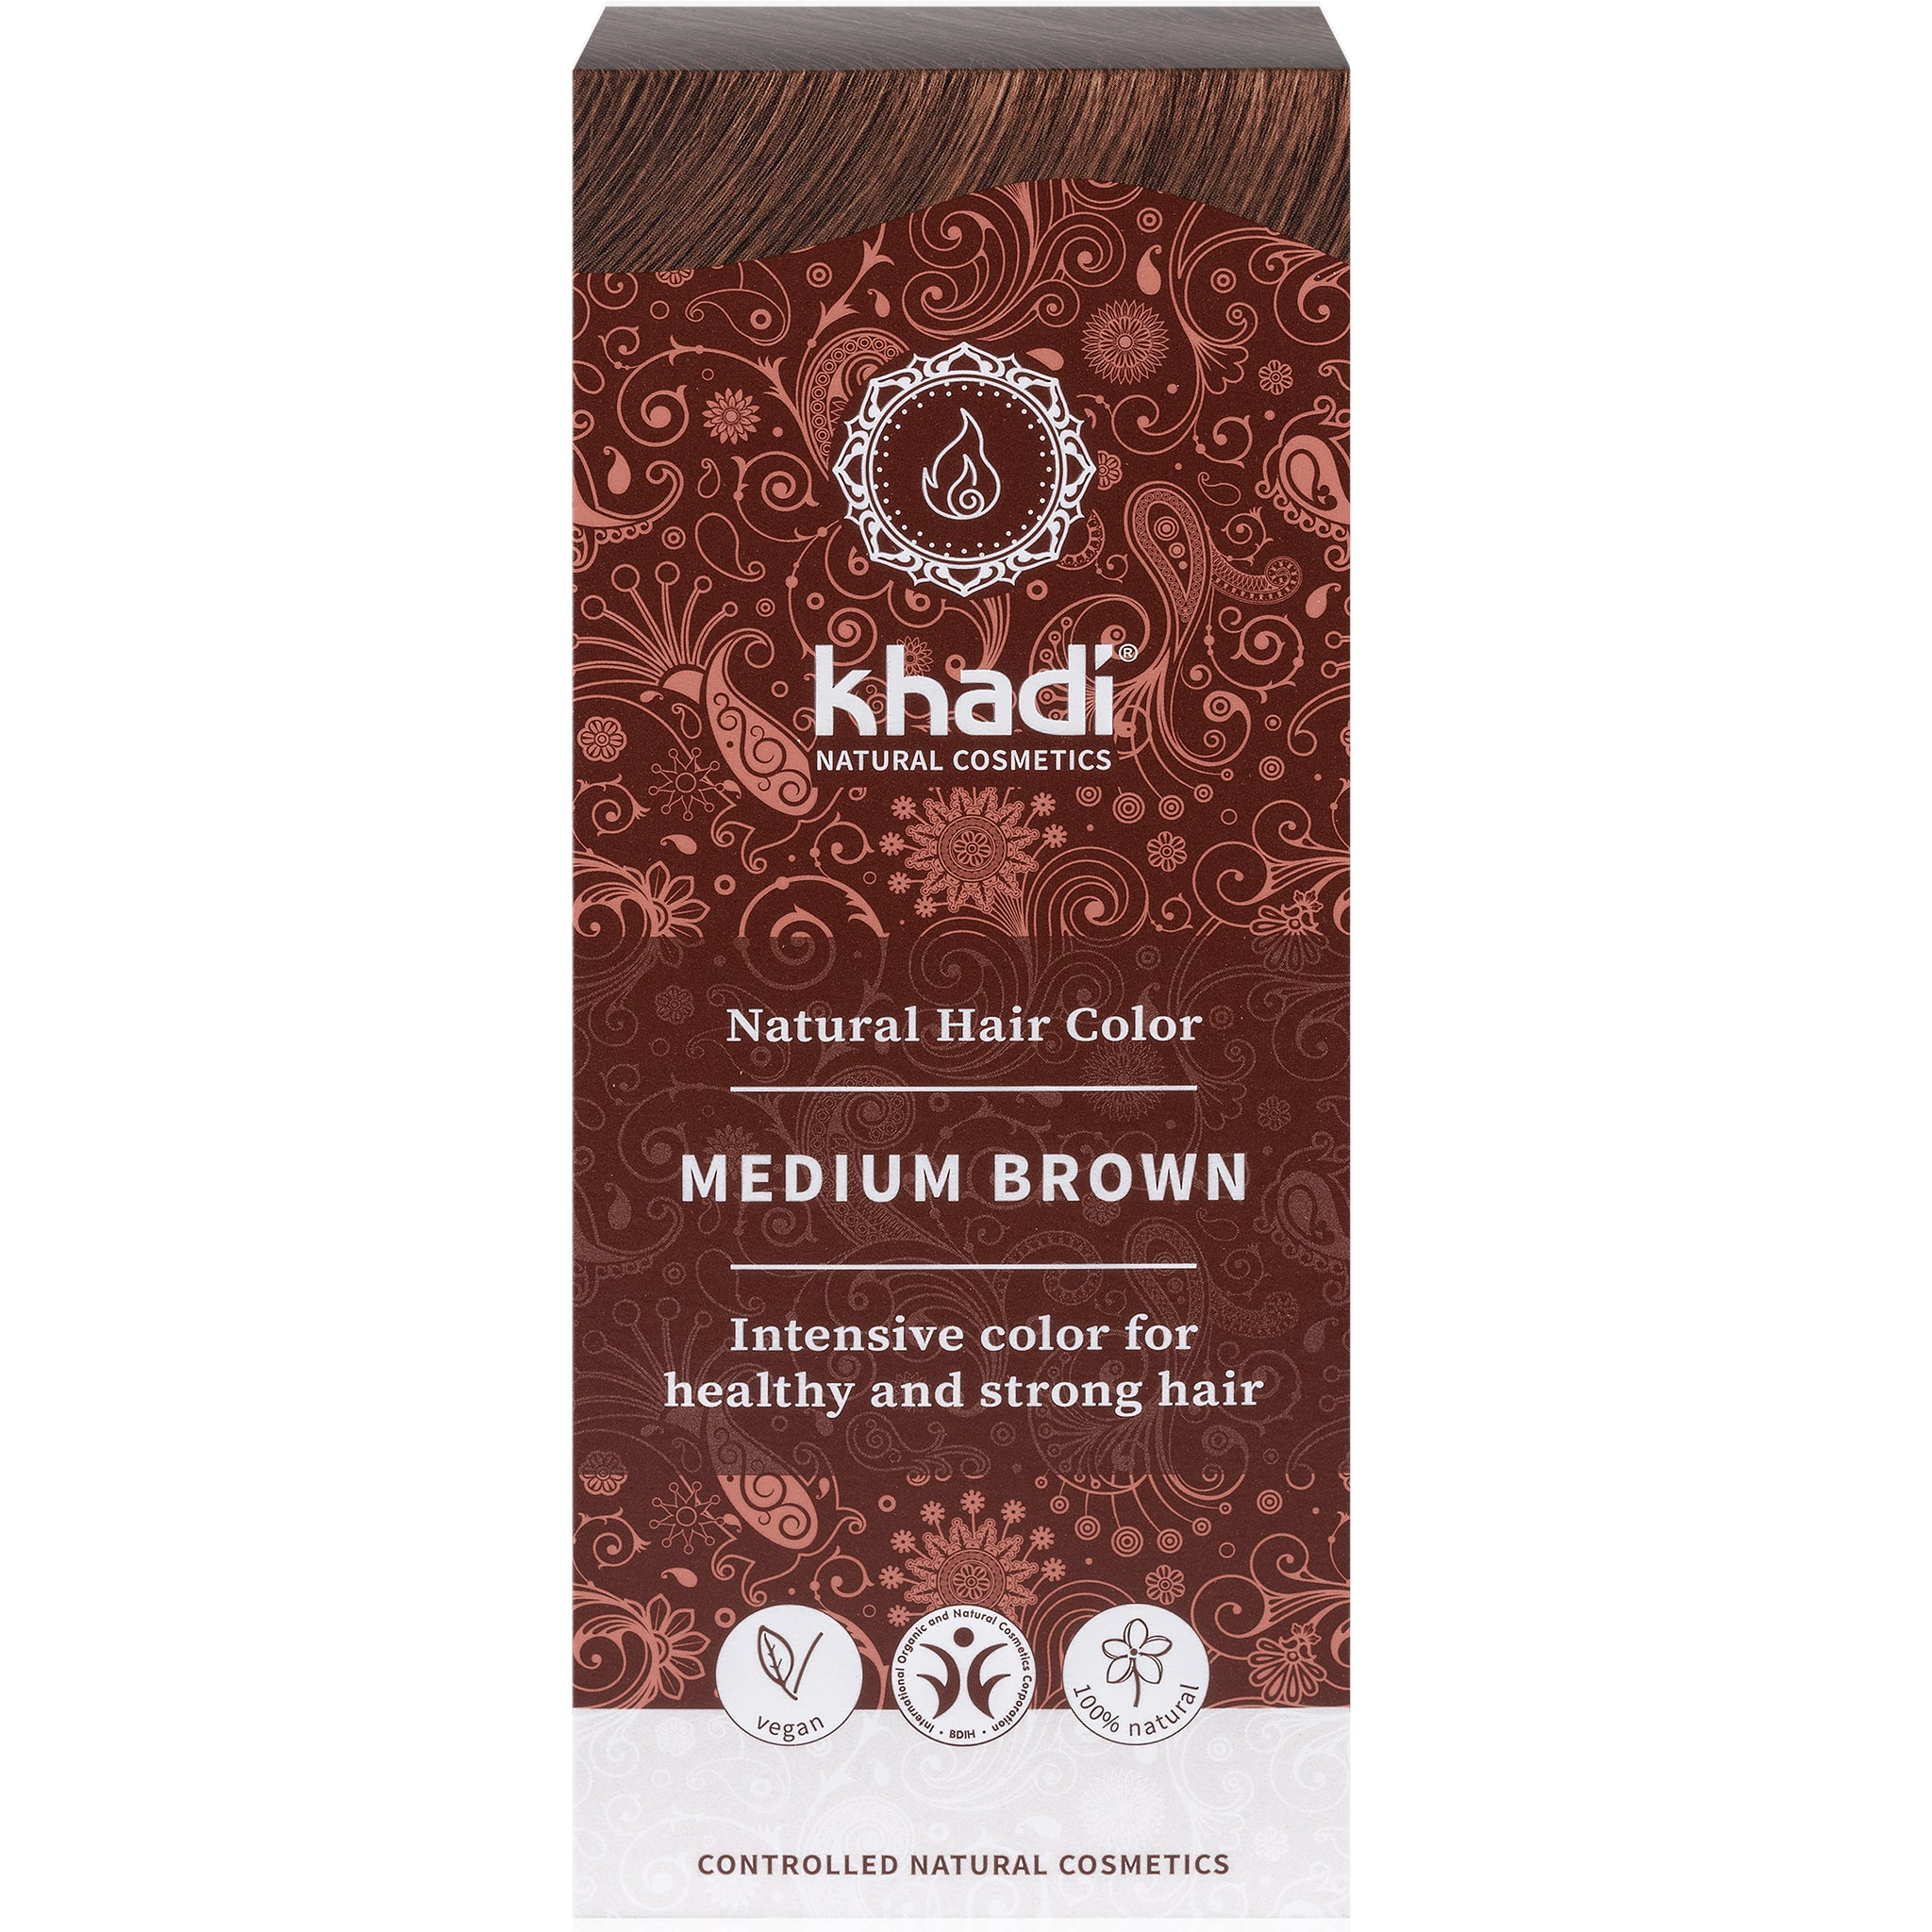 Herbal Hair Colour - Medium Brown